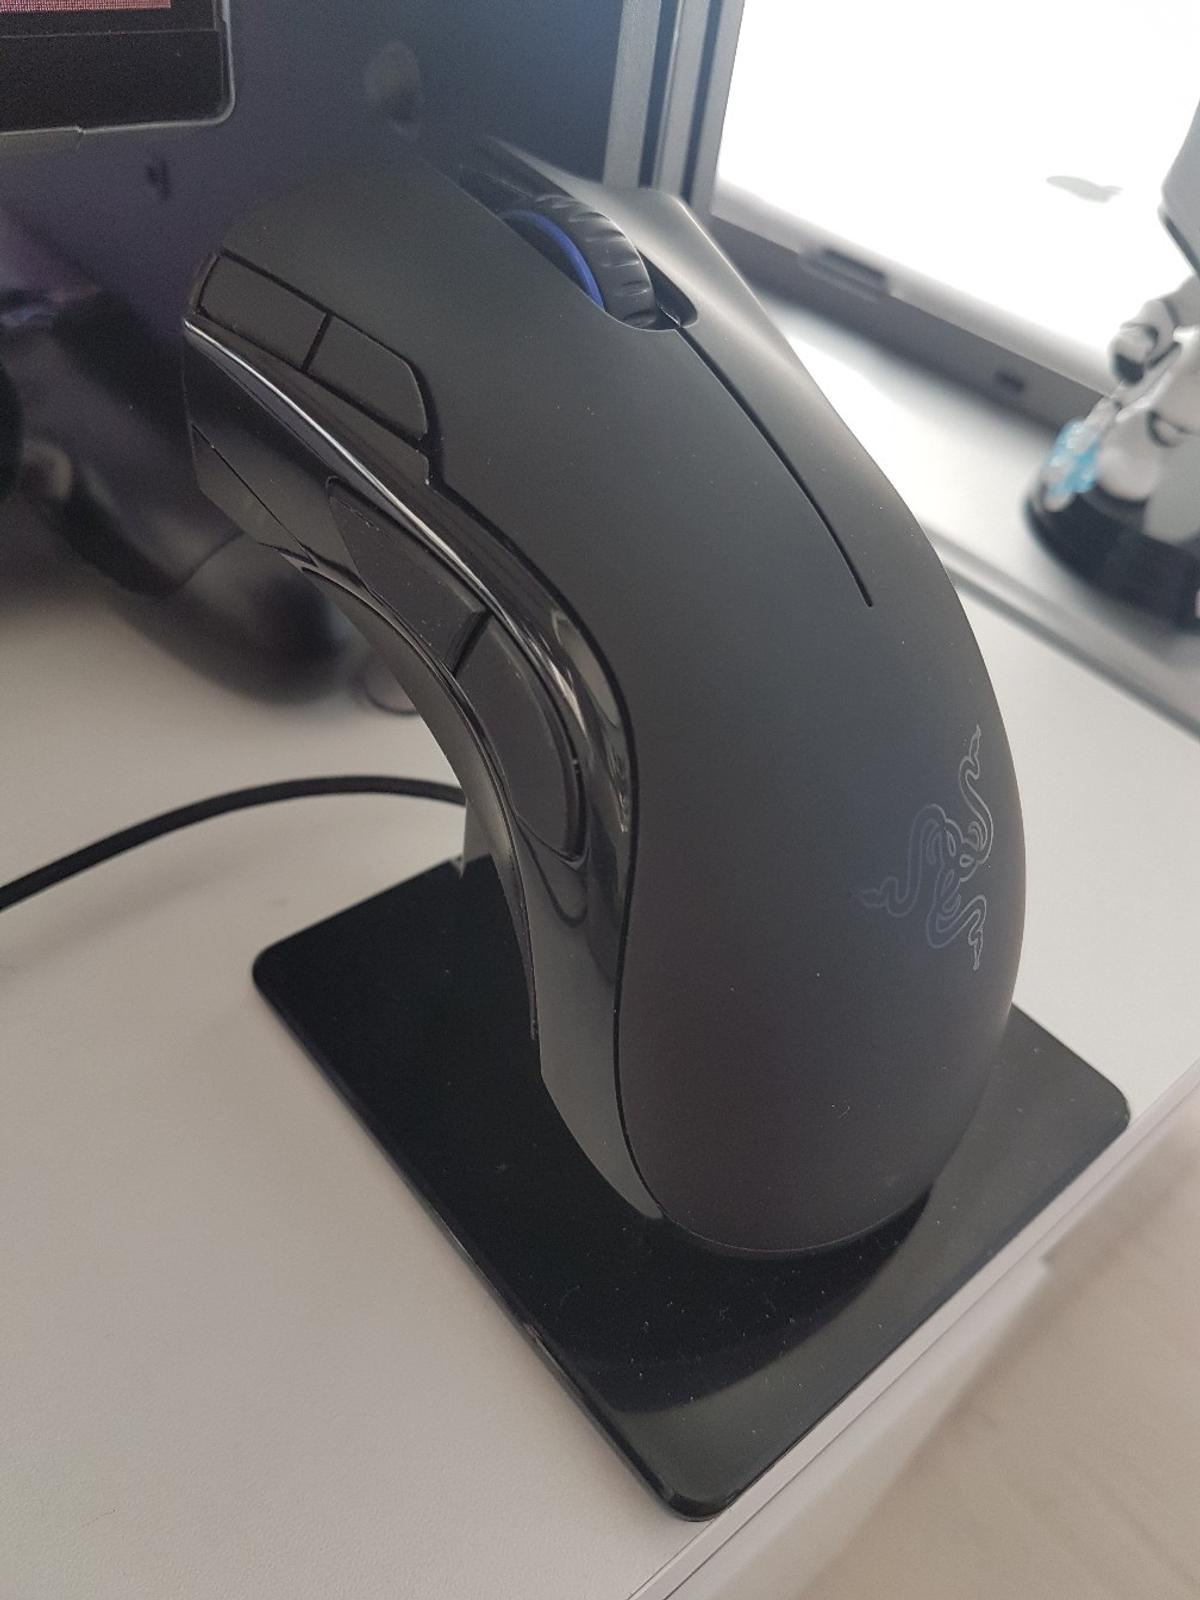 Xim4 + overwatch ps4 + mouse & keyboard in SW11 Wandsworth for